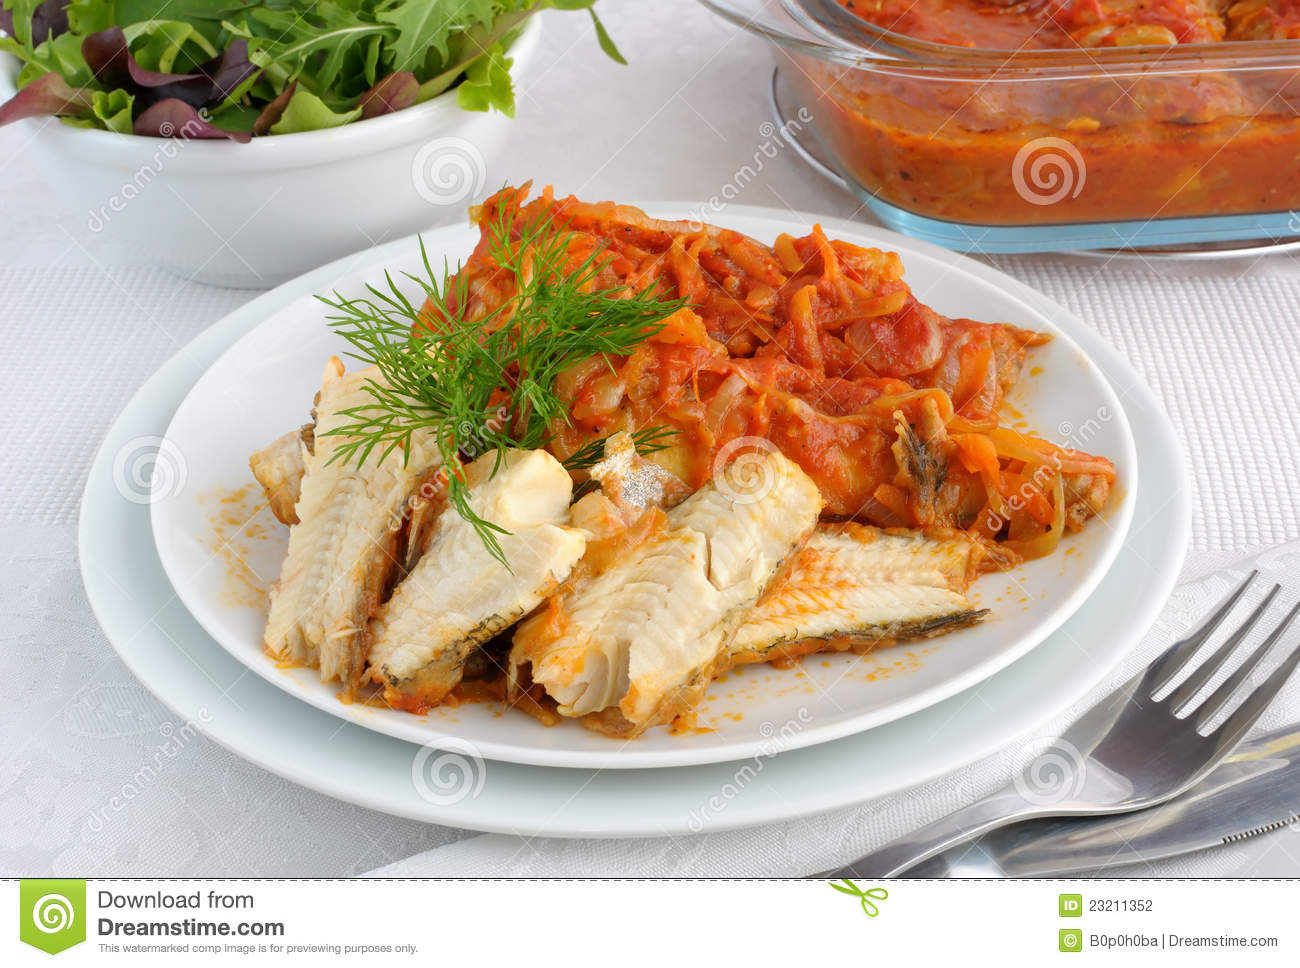 Baked fish in tomato sauce with vegetables stock for Fish in tomato sauce